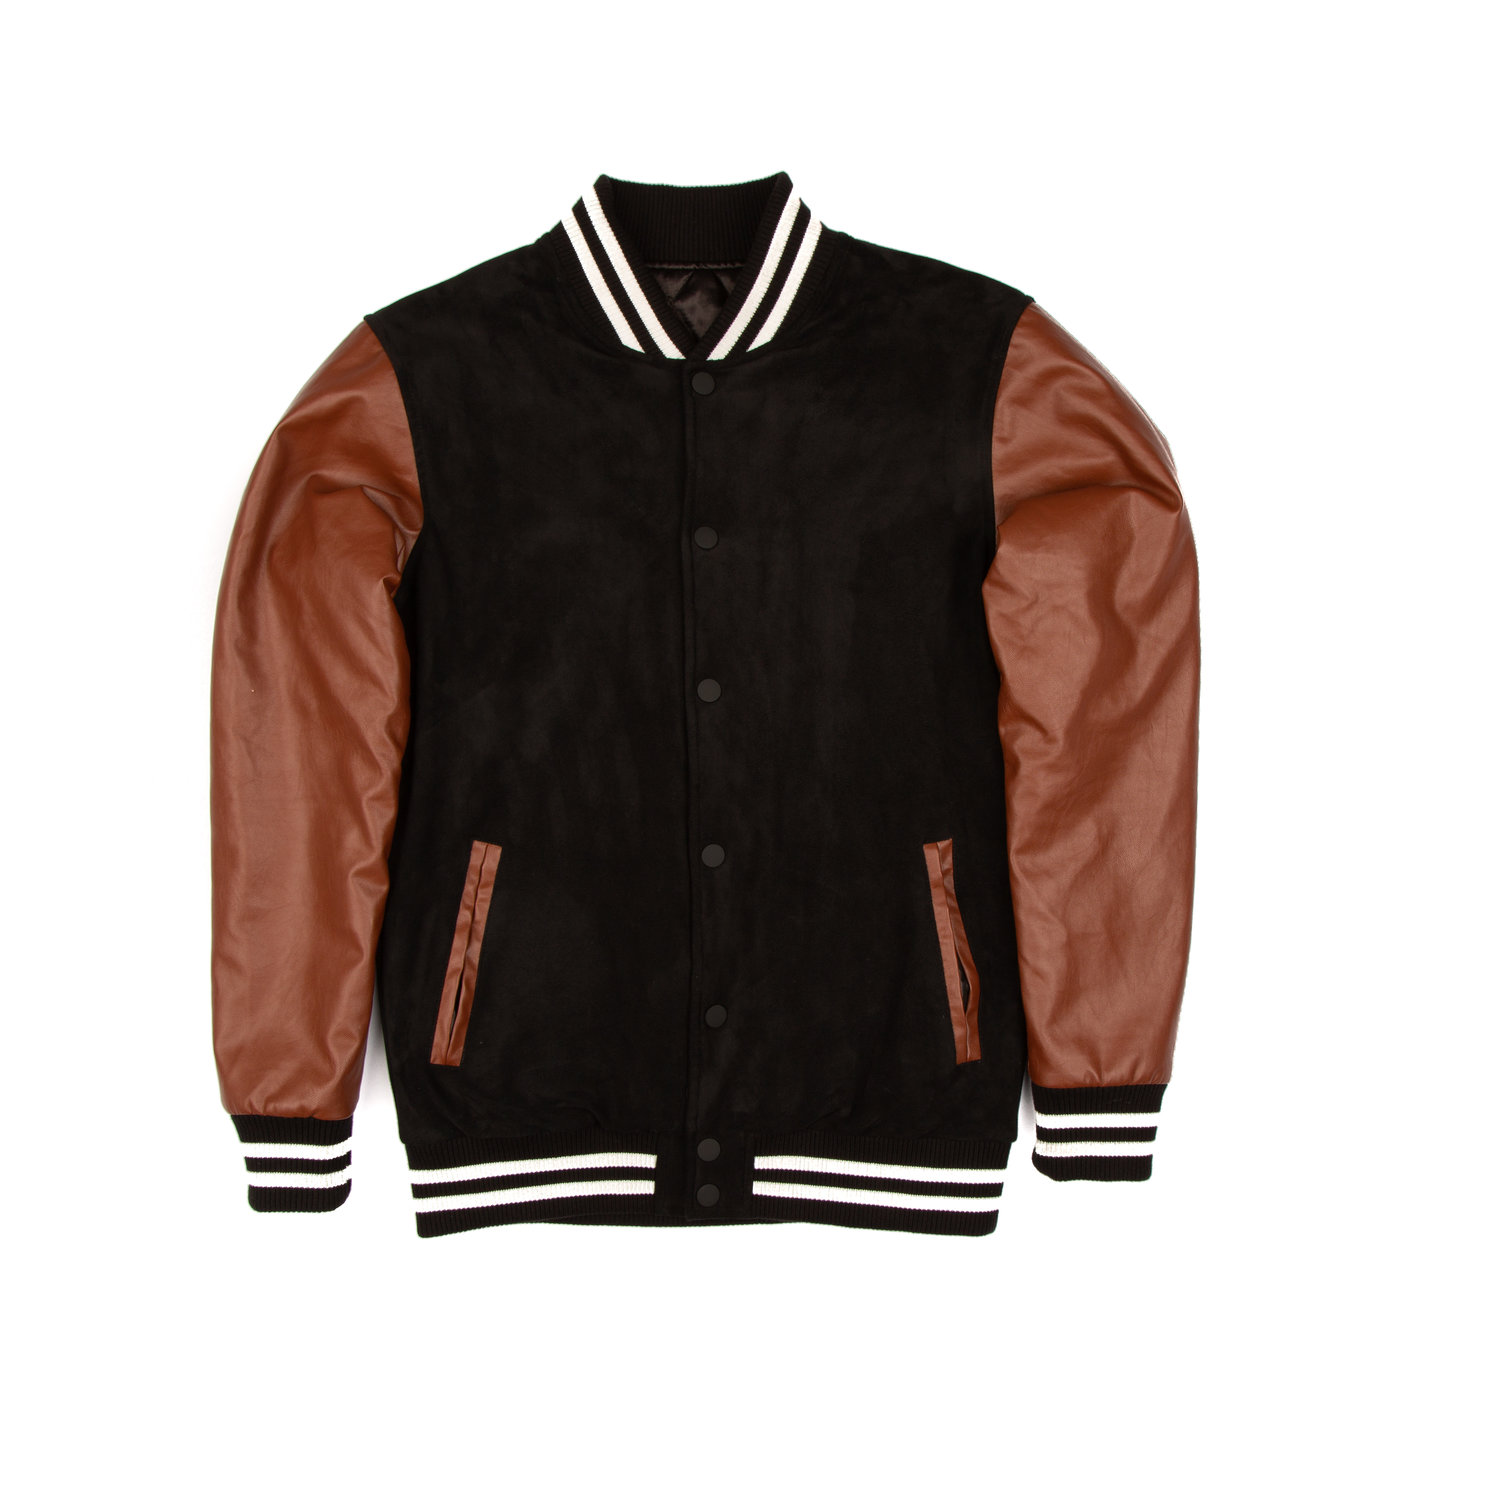 e90b76327d2 Varsity Jacket (Custom Order Only) — The Right Choice in Clothing ...